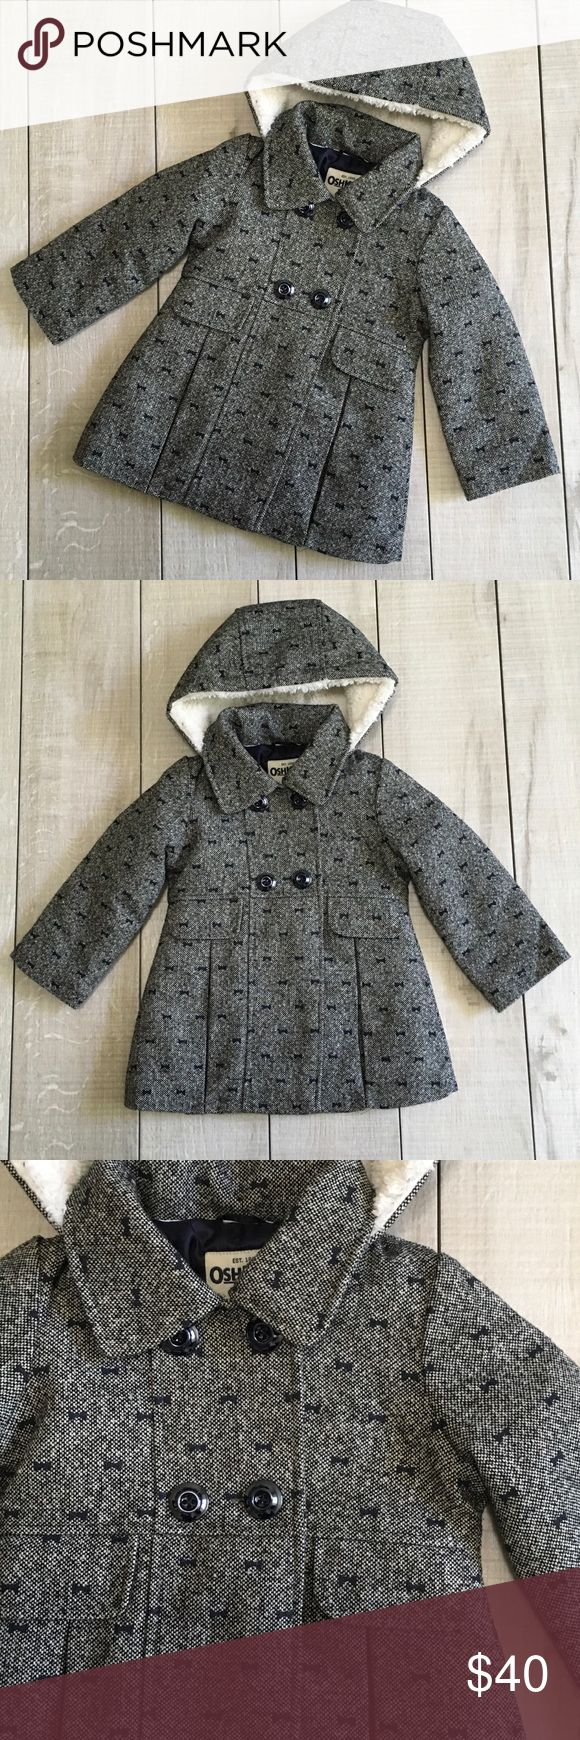 NEW LISTING - Gorgeous Navy Metallic Winter Coat Size 2T. OshKosh B'gosh winter dress coat. Navy and white with silver metallic thread. This coat is gorgeous and warm! Excellent used condition. Tried on indoors. Still has the removable stitches across bottom pleats as shown in photos. Real front pockets. Name tag on inside. Smoke free home. OshKosh B'gosh Jackets & Coats Pea Coats